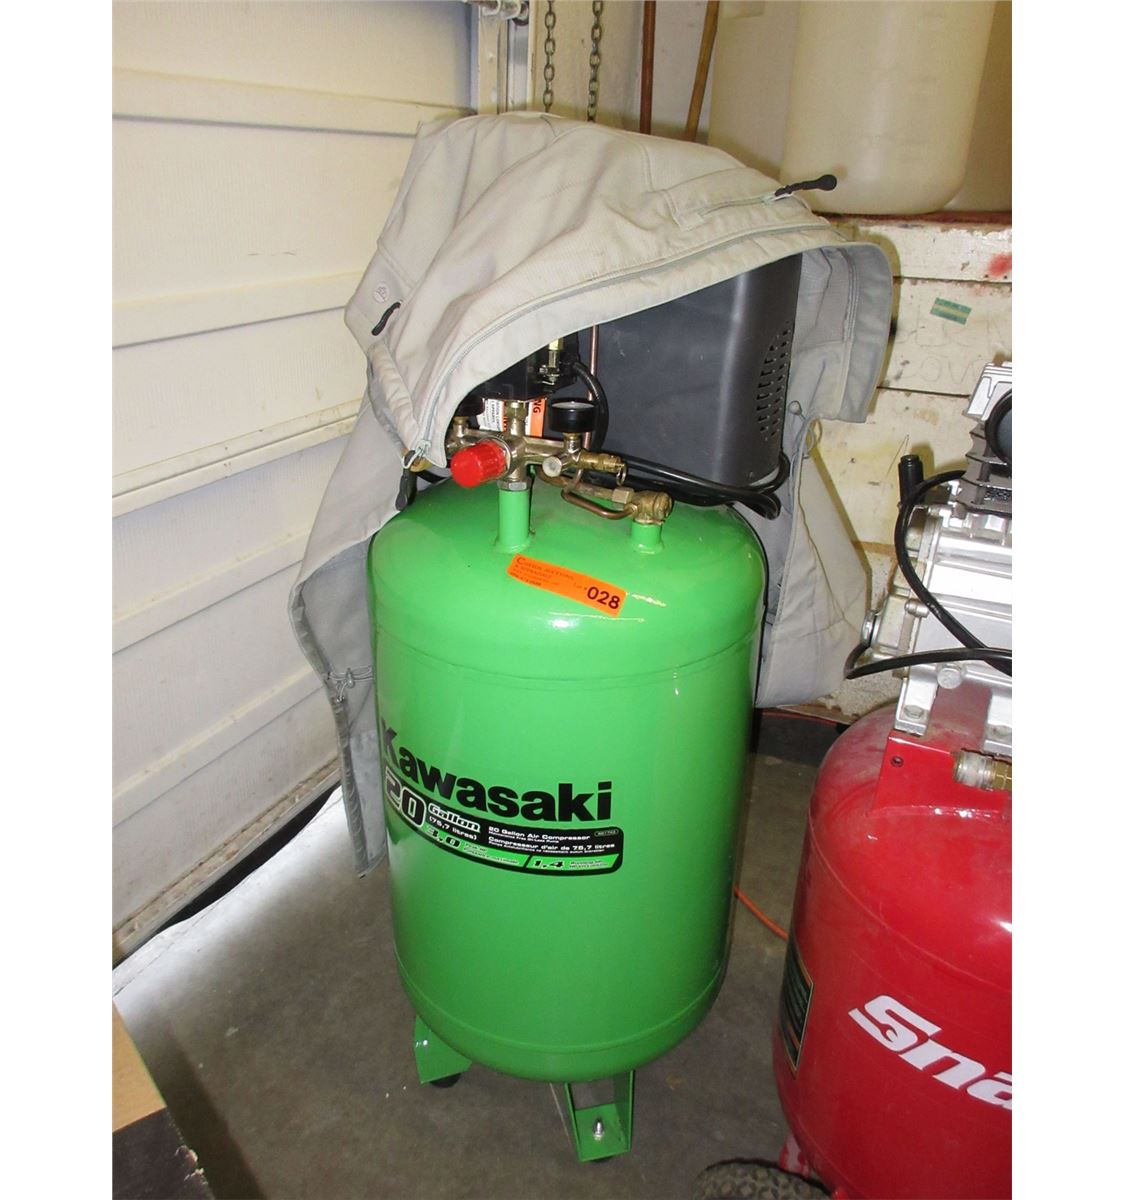 Used Kawasaki 20 Gallon air compressor